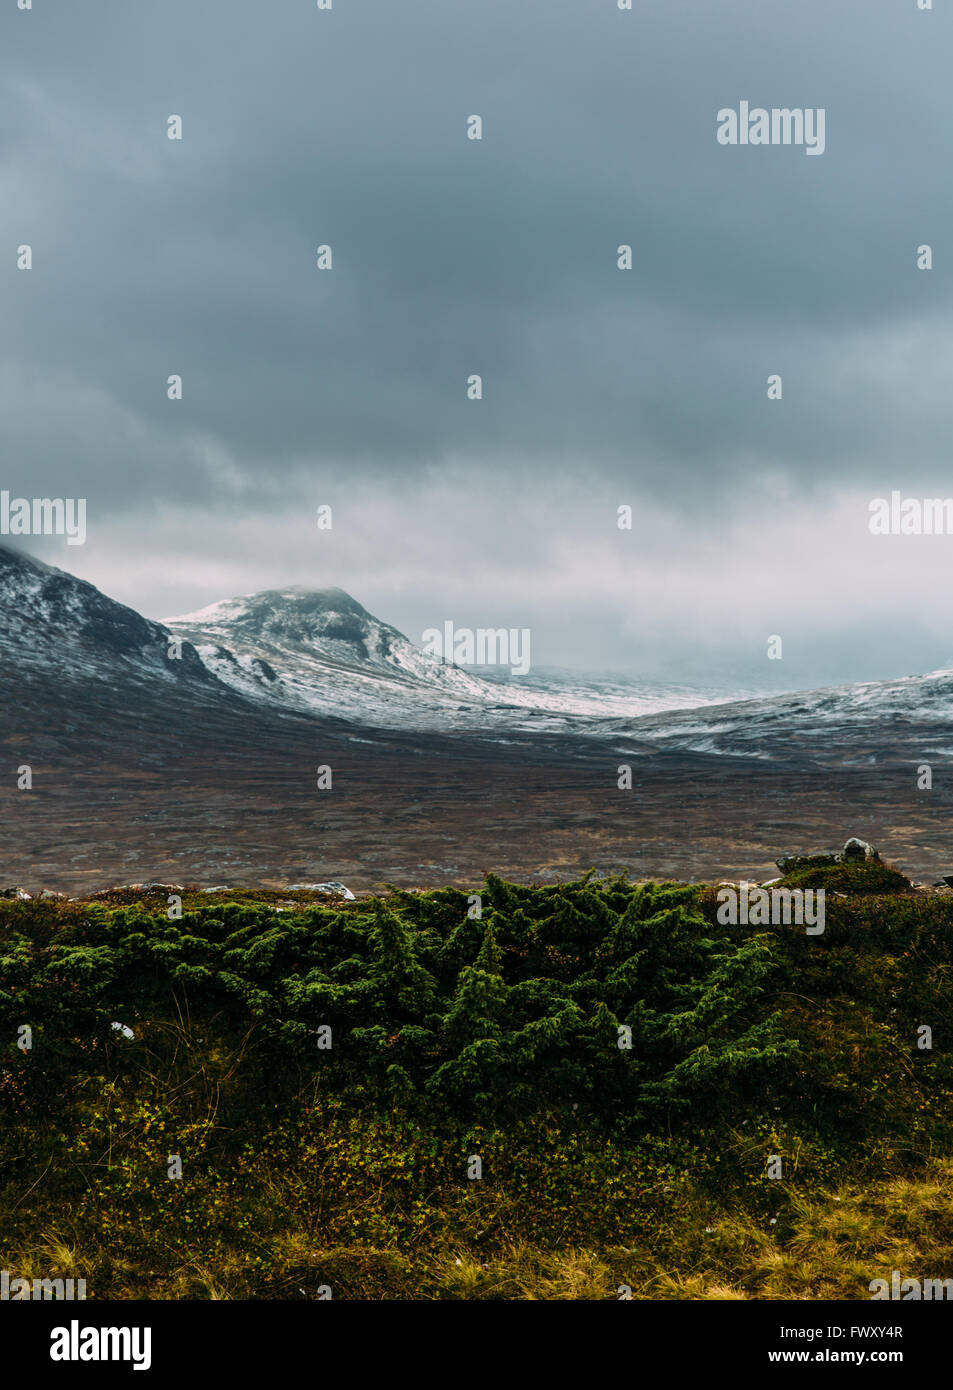 Sweden, Sylama, Jamtland, Landscape with snowcapped mountains and overcast sky - Stock Image